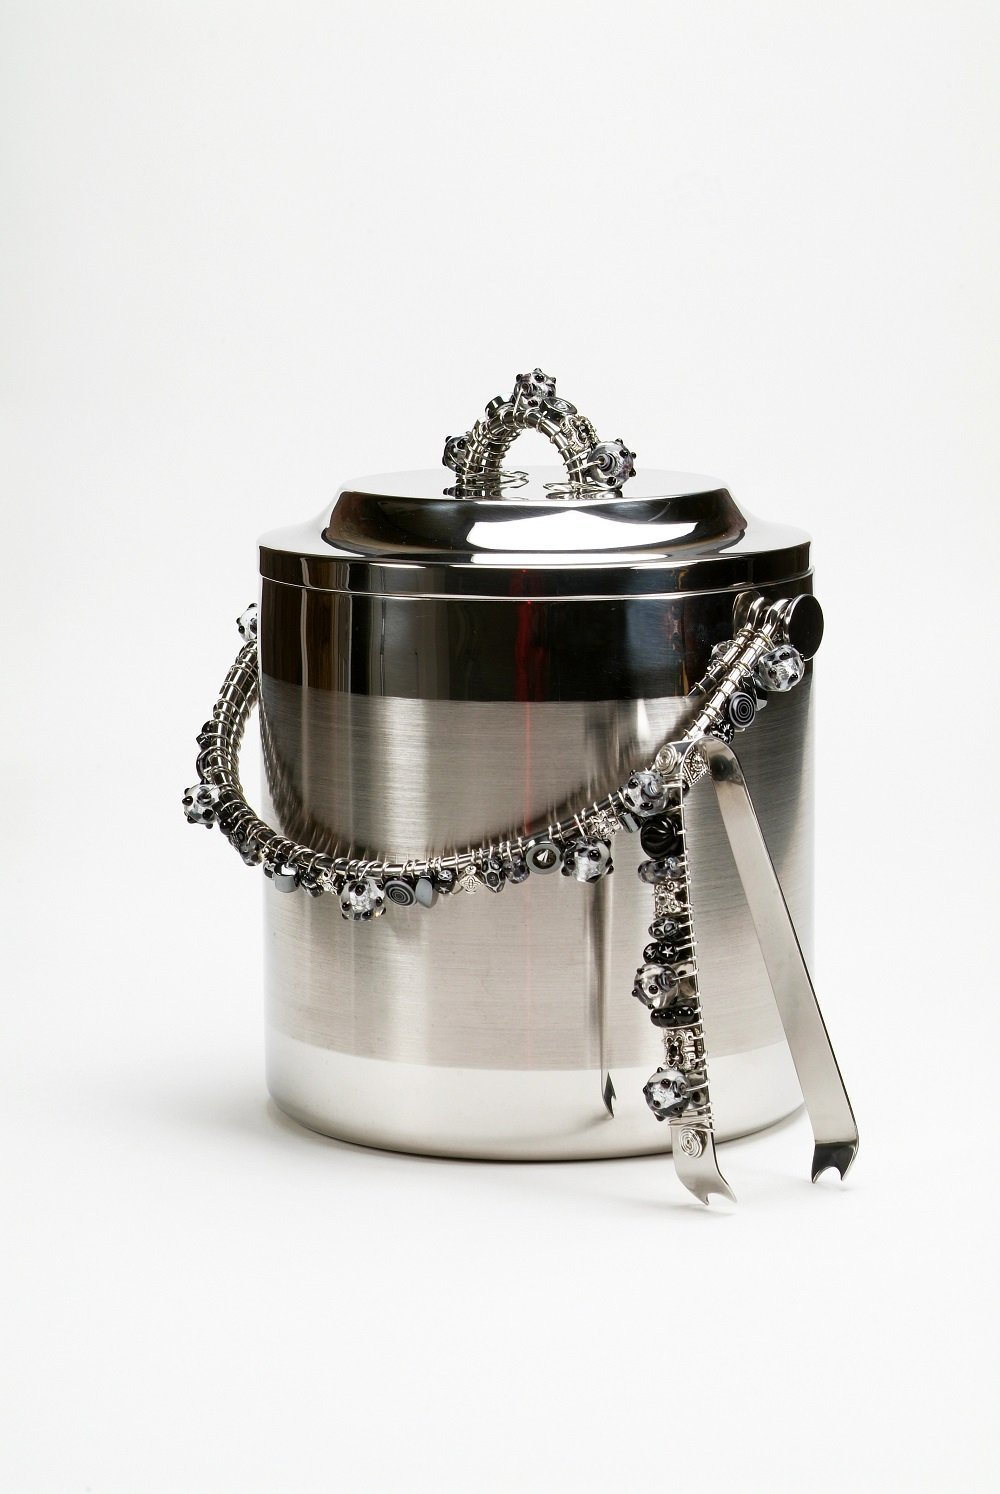 Hand Beaded Wire Wrapped Stainless Steel Double Wall Ice Bucket 3.5 Liters with Matching Tongs by Occasionware by Artifex